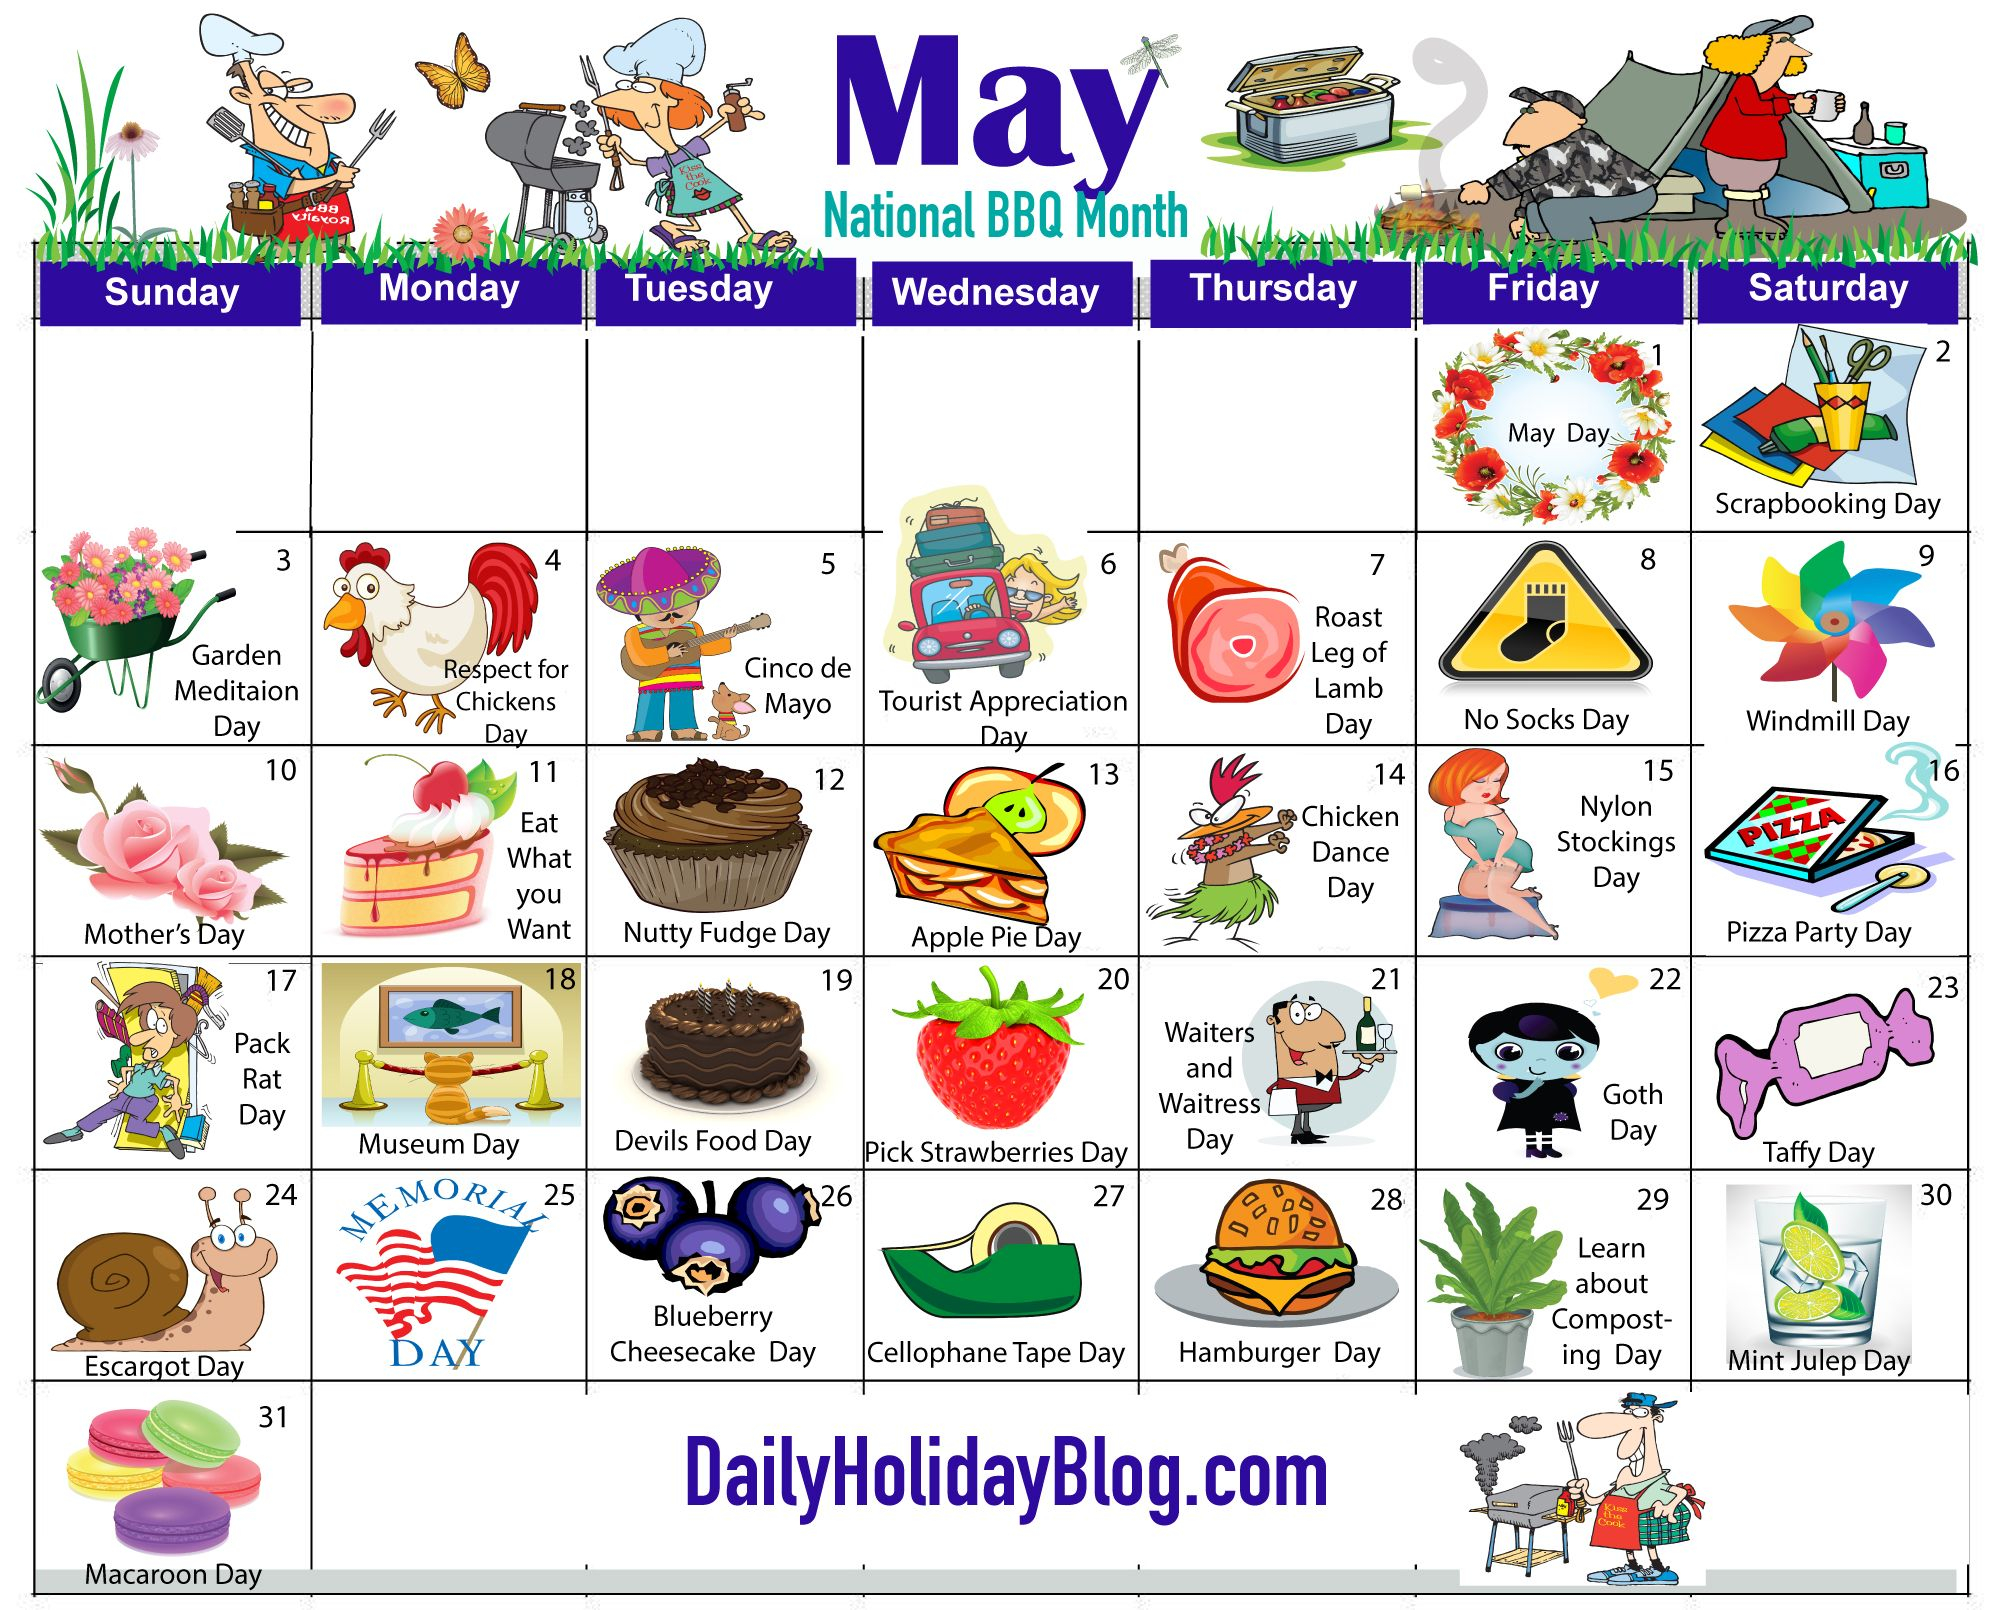 Happy May Day - Here Is A Calendar So You Can Celebrate intended for Find Me An Everyday Is A Holiday Calendar